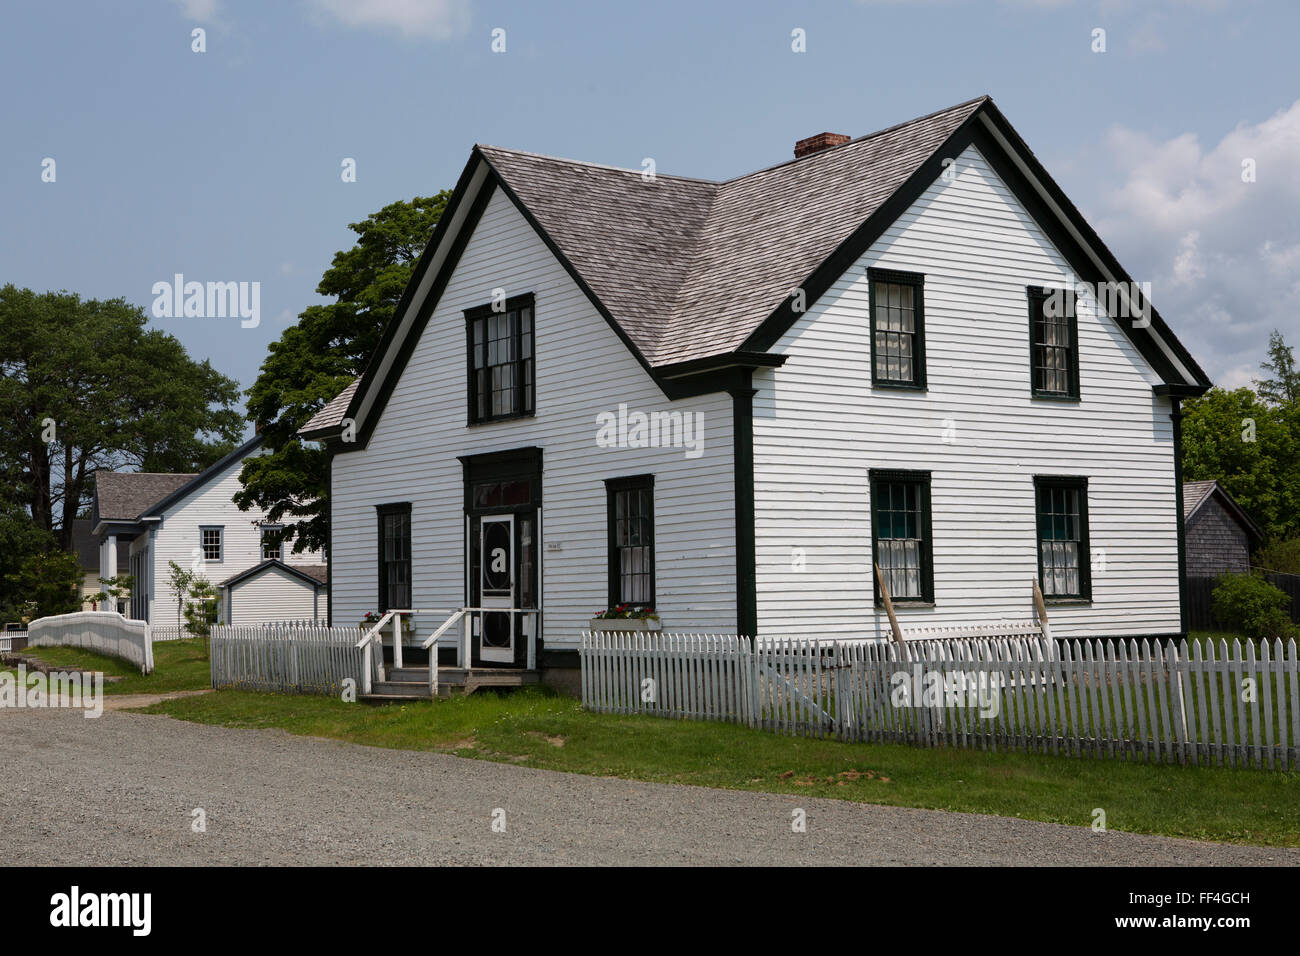 Houses in sherbrooke village in nova scotia canada the for Houses nova scotia